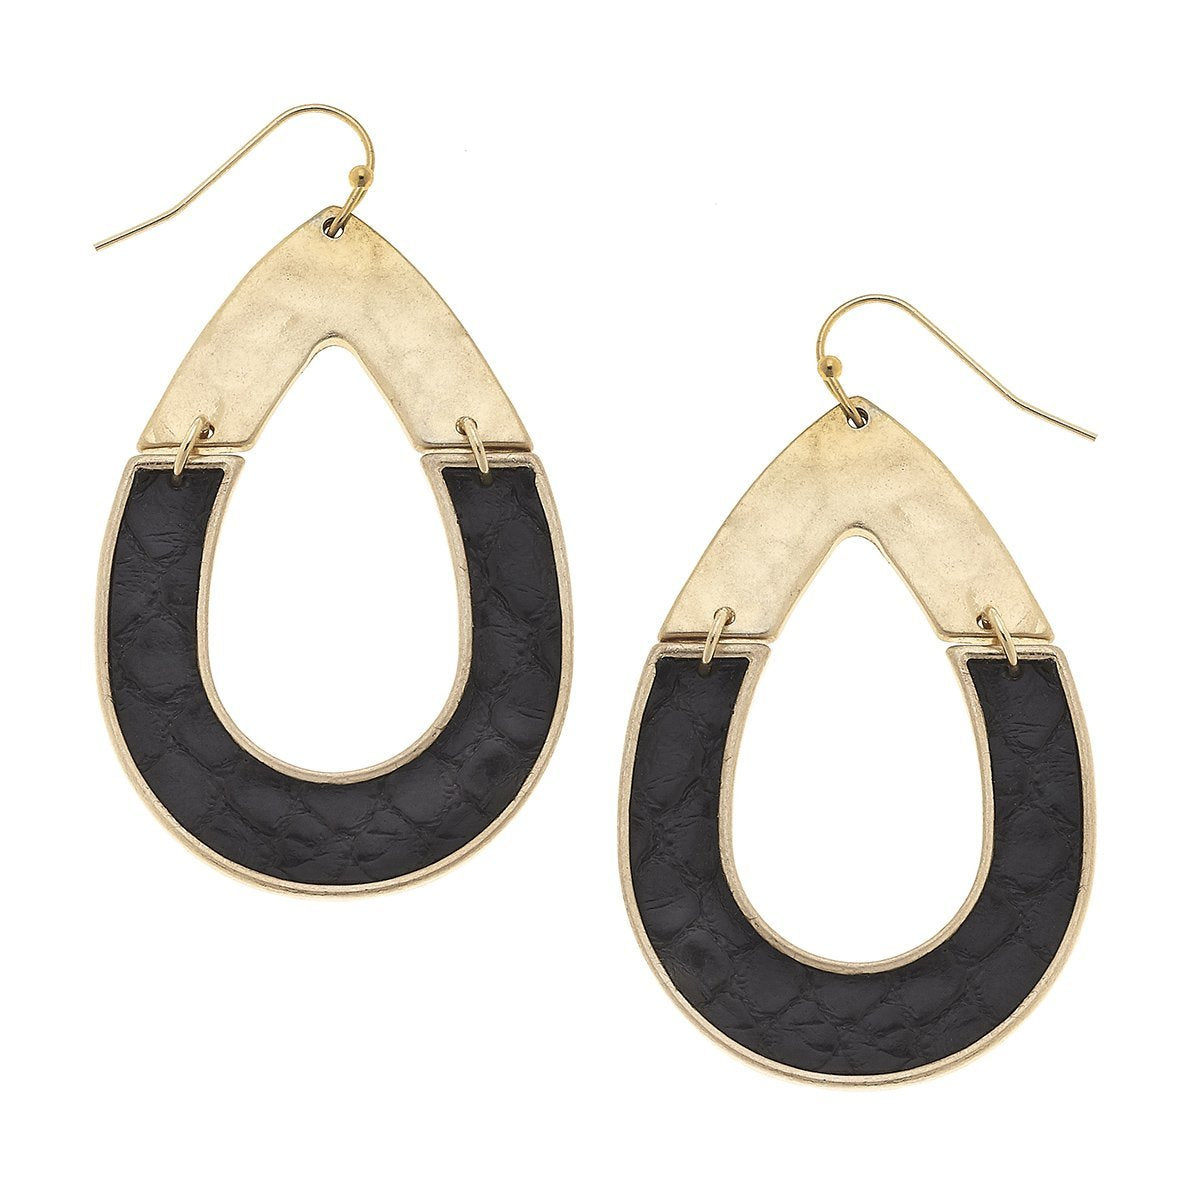 Harlow Teardop Earrings in Black Leather